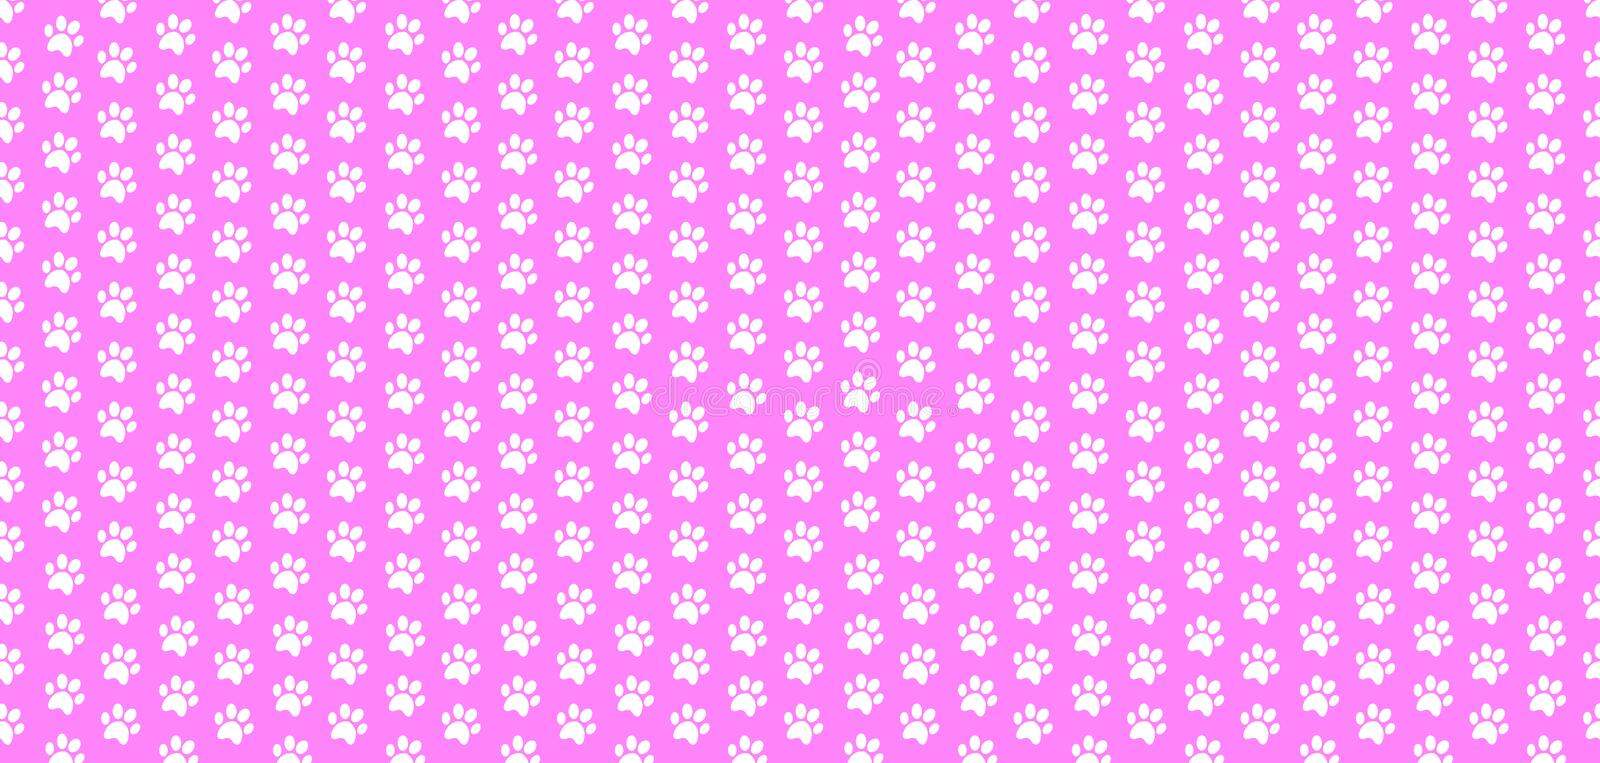 Rectangle seamless baby pattern of white animal paw prints on pink background. royalty free illustration